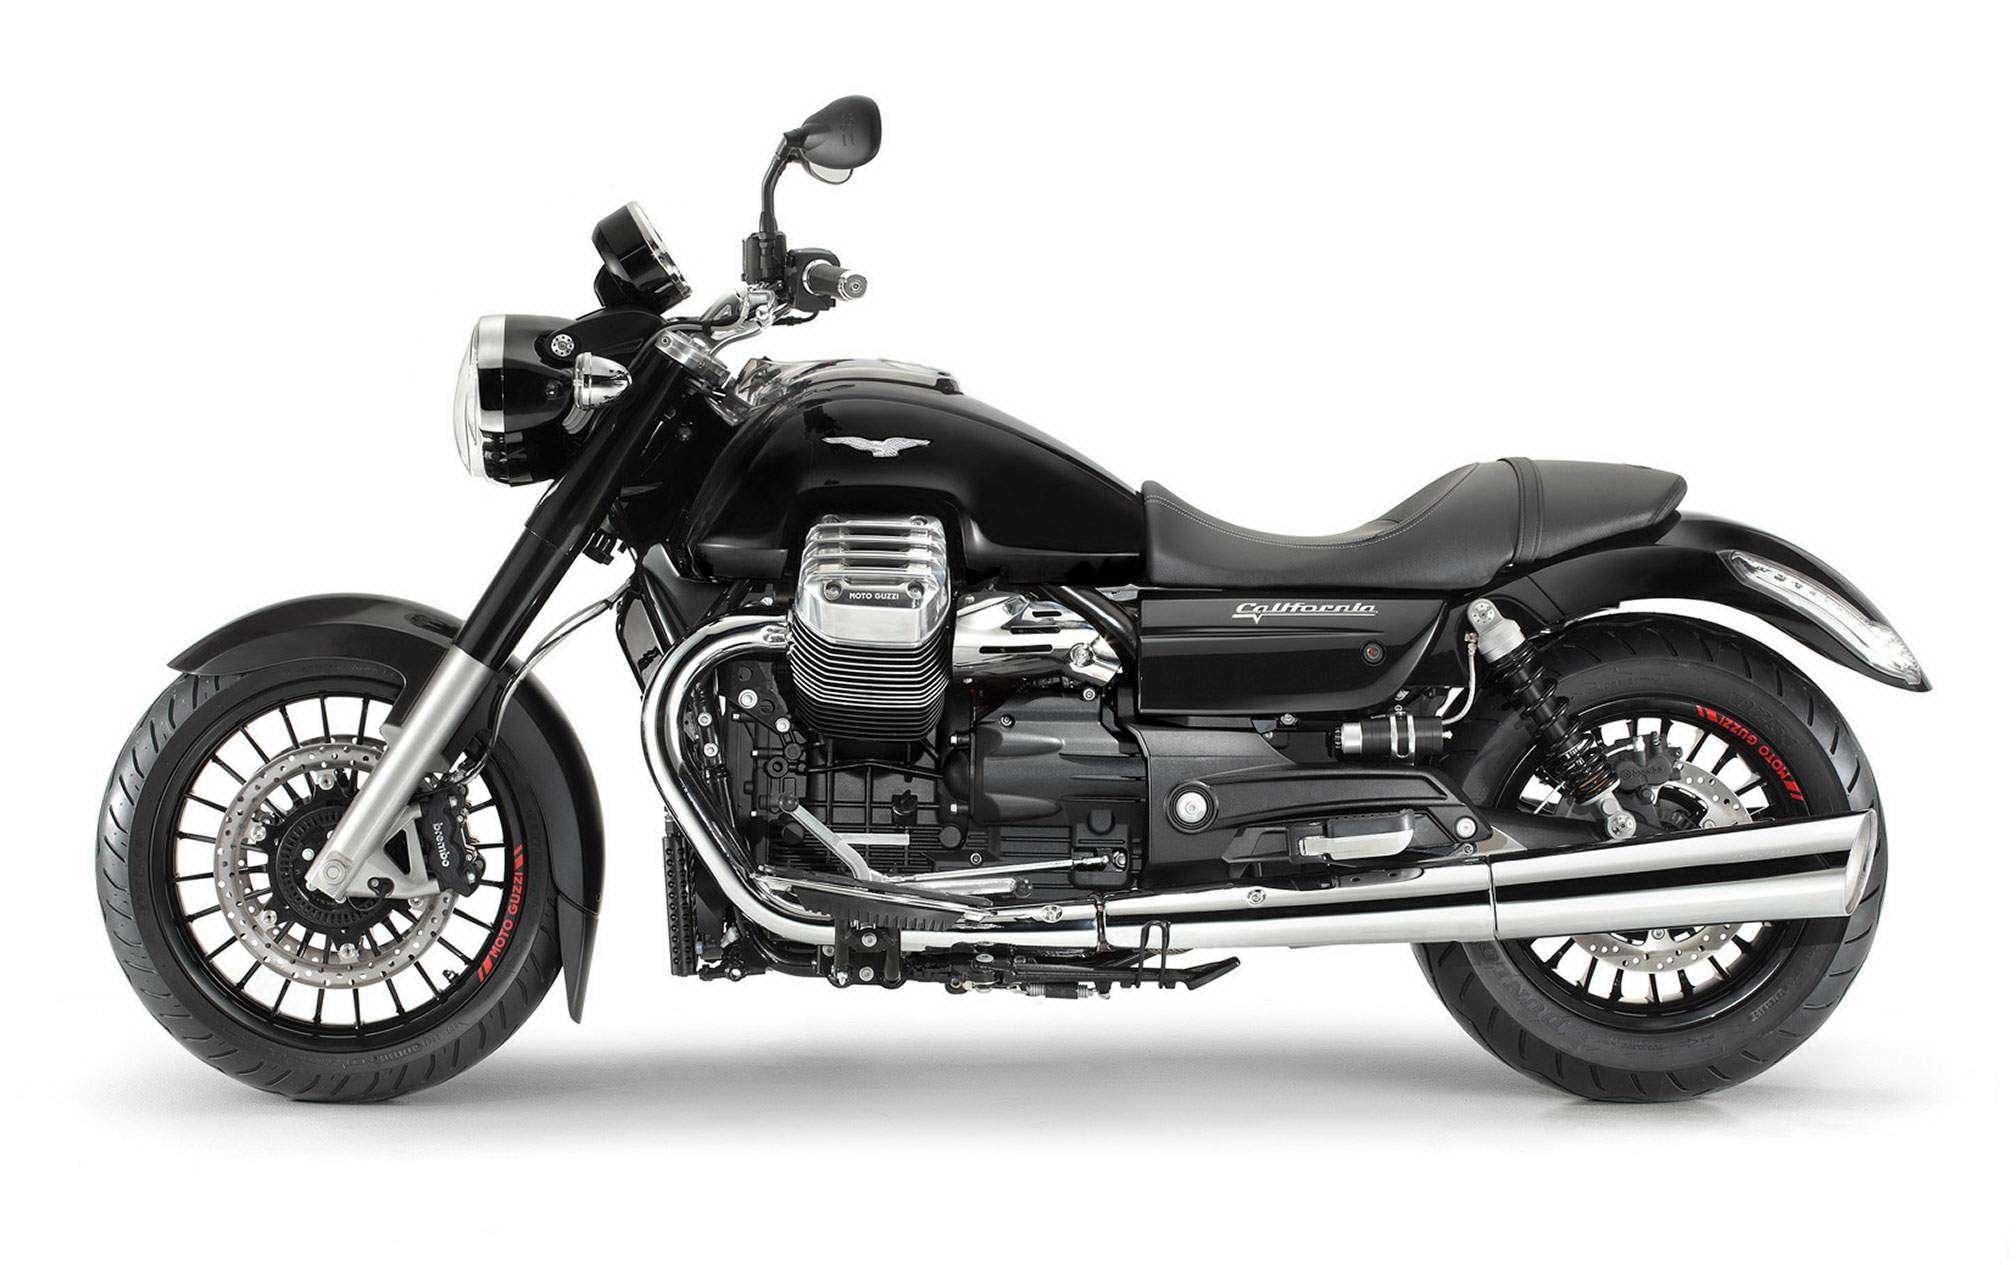 Мотоцикл Moto Guzzi California 1400 Custom 2017